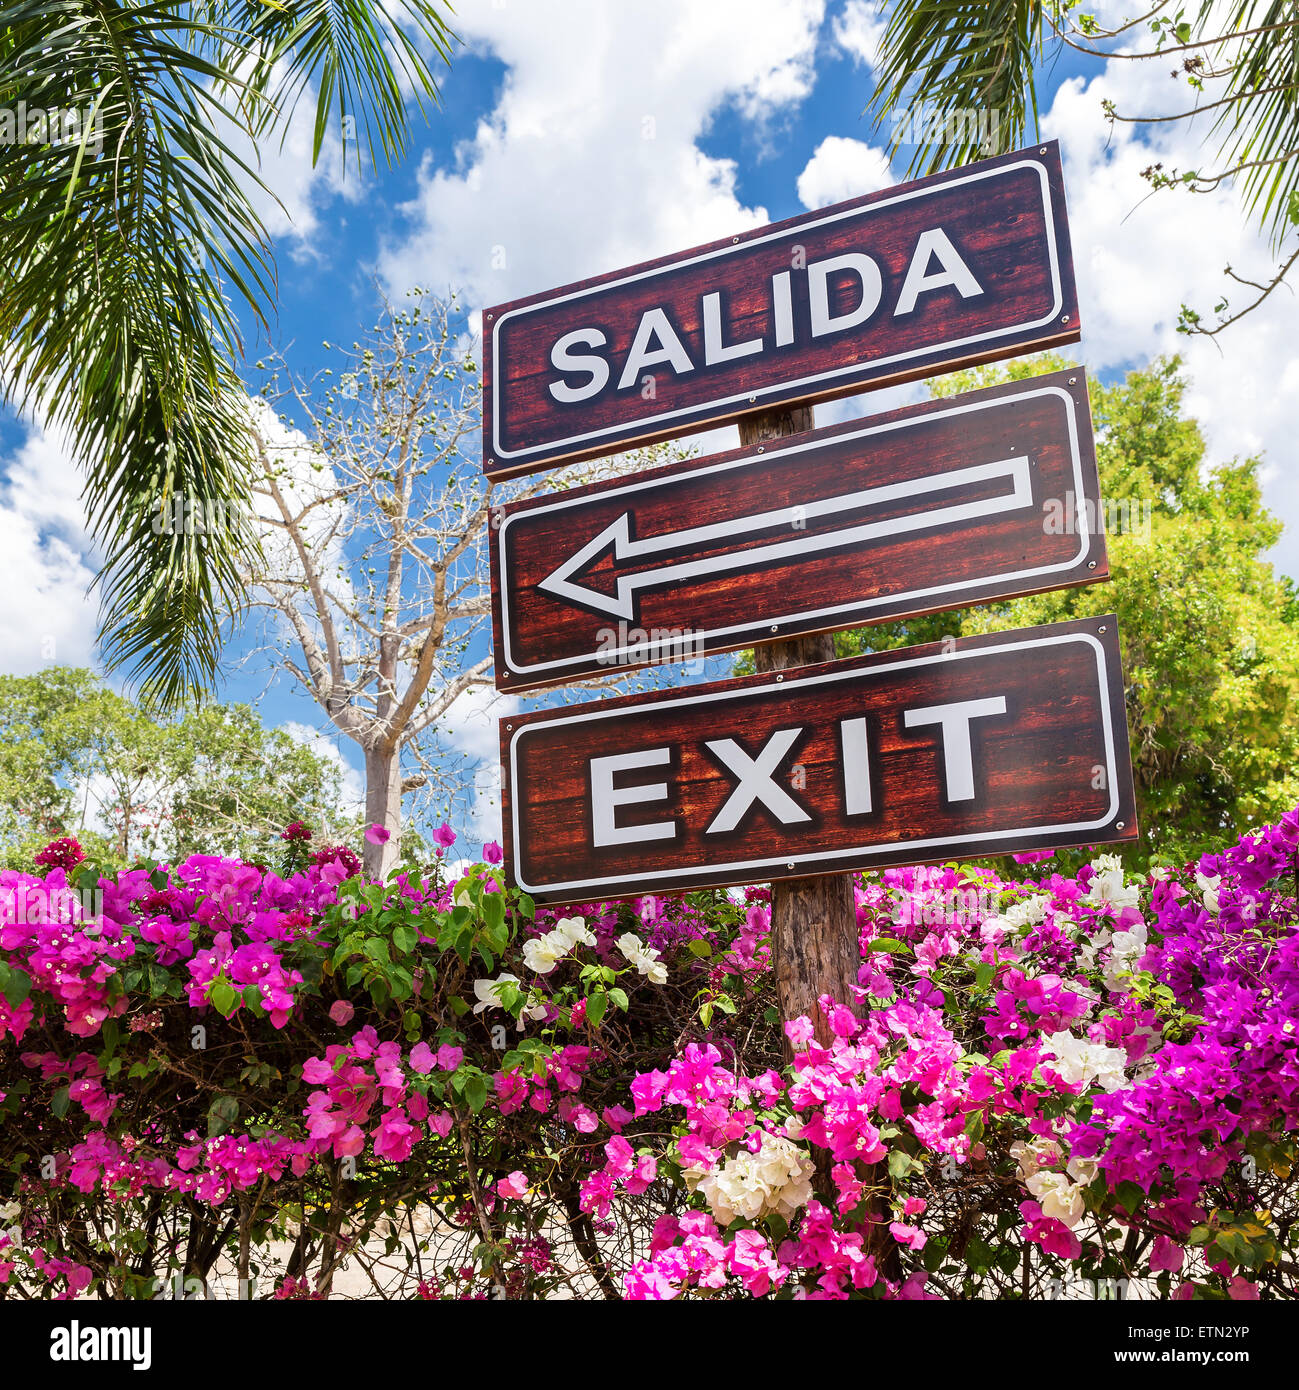 Sign Salida Exit with arrow, outdoors - Stock Image